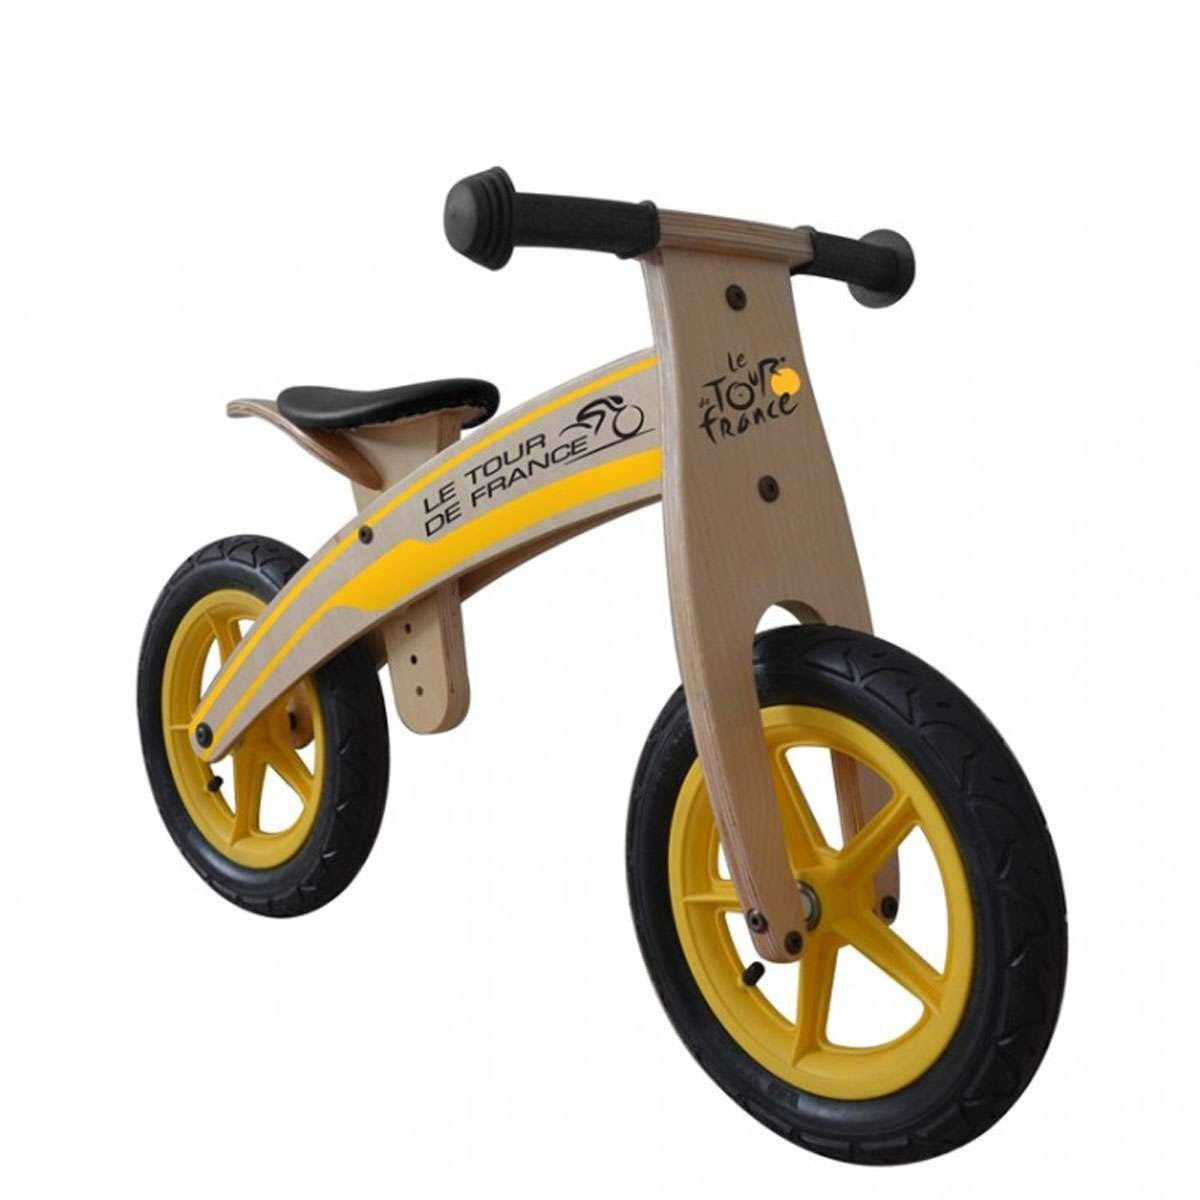 Tour de France Wood Running/Balance Bike, 12 inch Wheels, Kid's Bike, Wood Grain Color (Renewed)